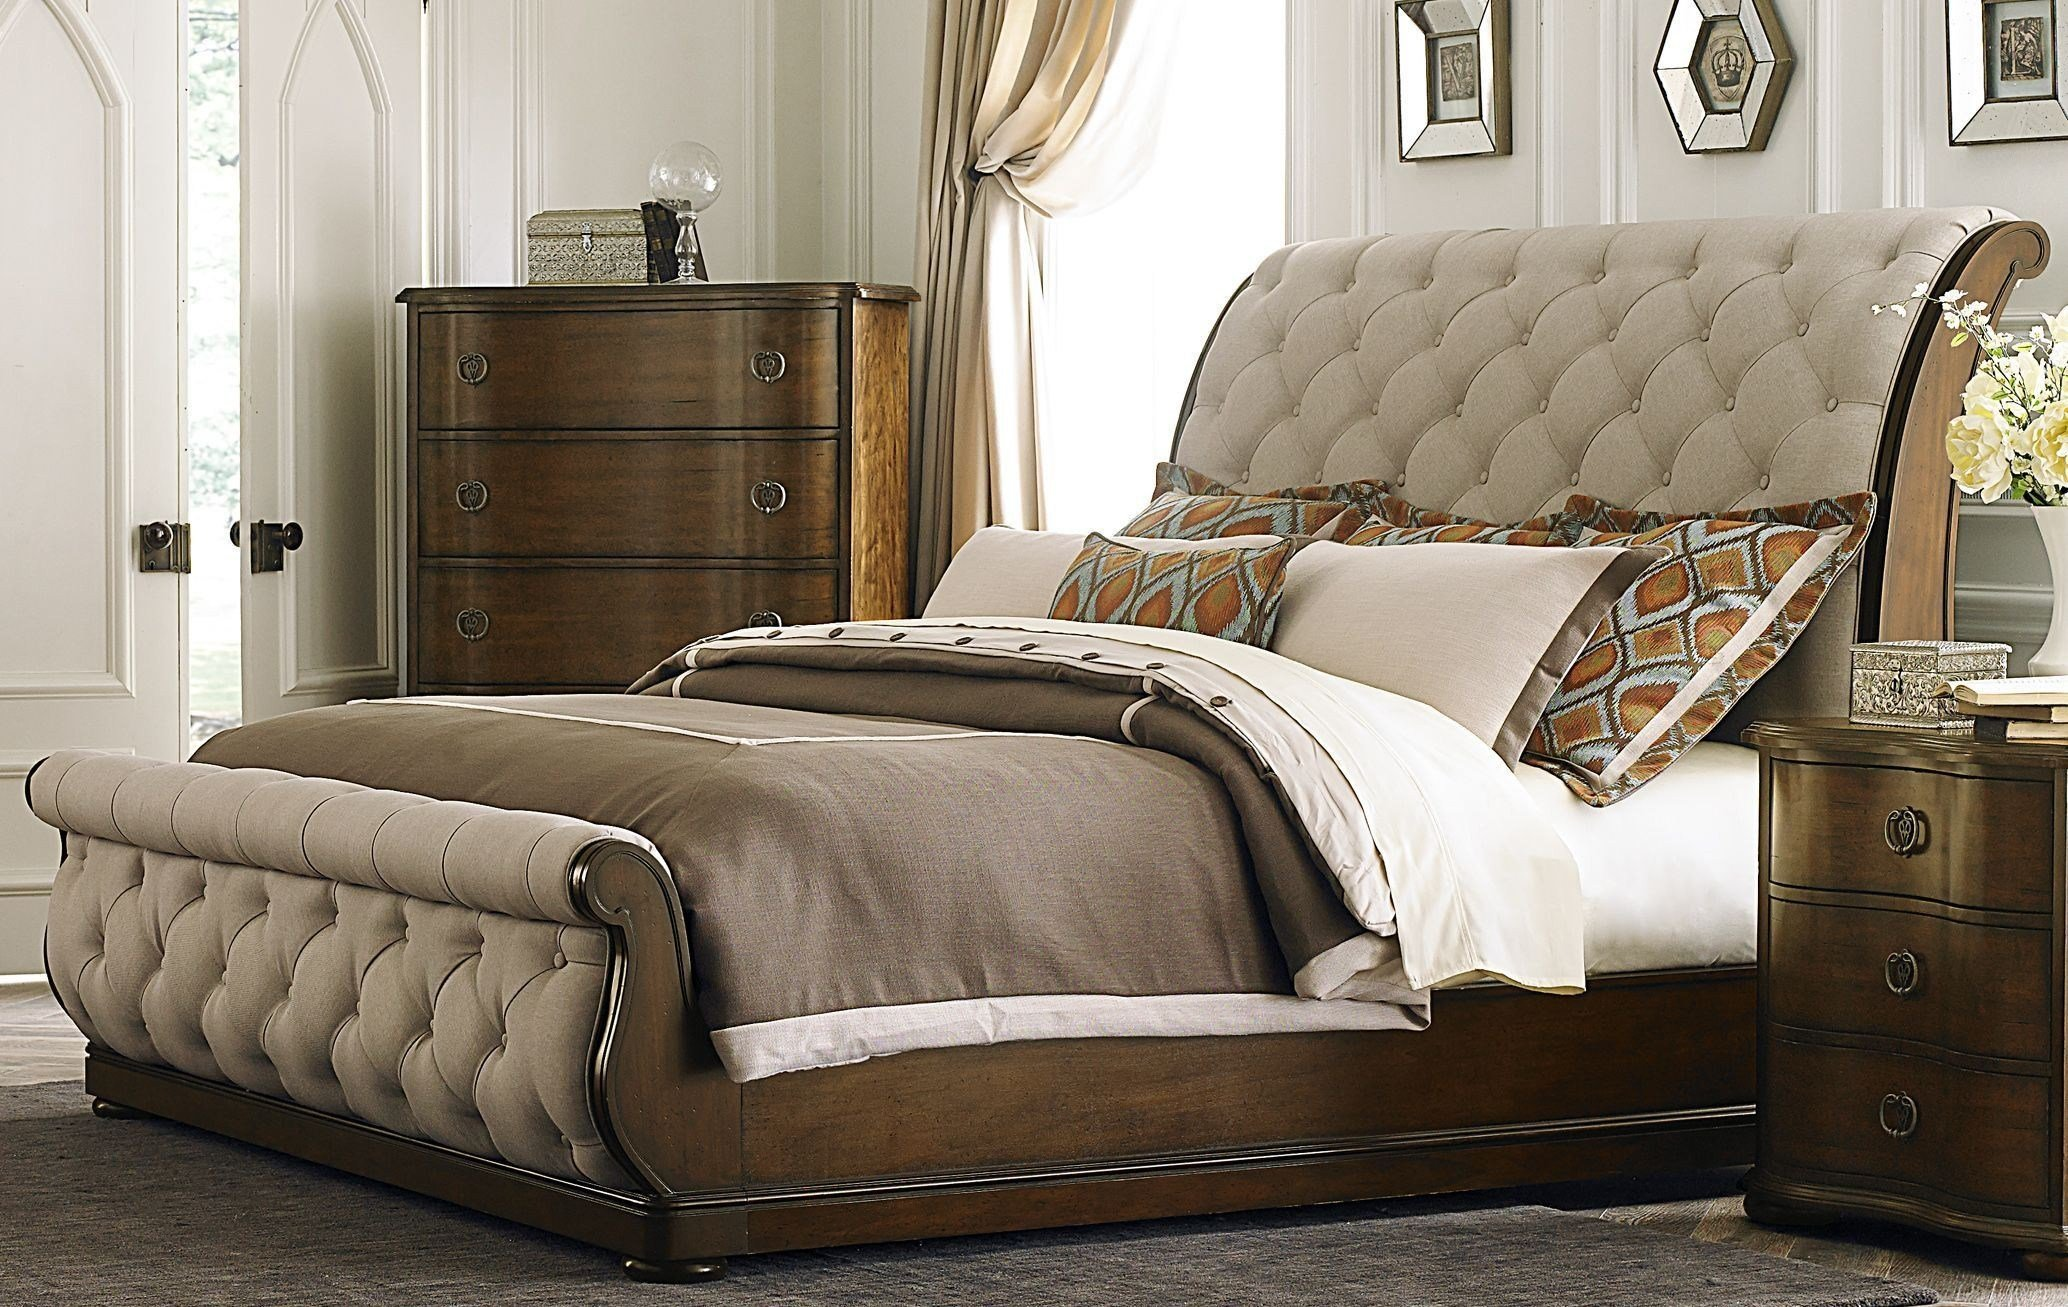 Best Cotswold Upholstered Sleigh Bedroom Set From Liberty 545 Br Qsl Coleman Furniture With Pictures